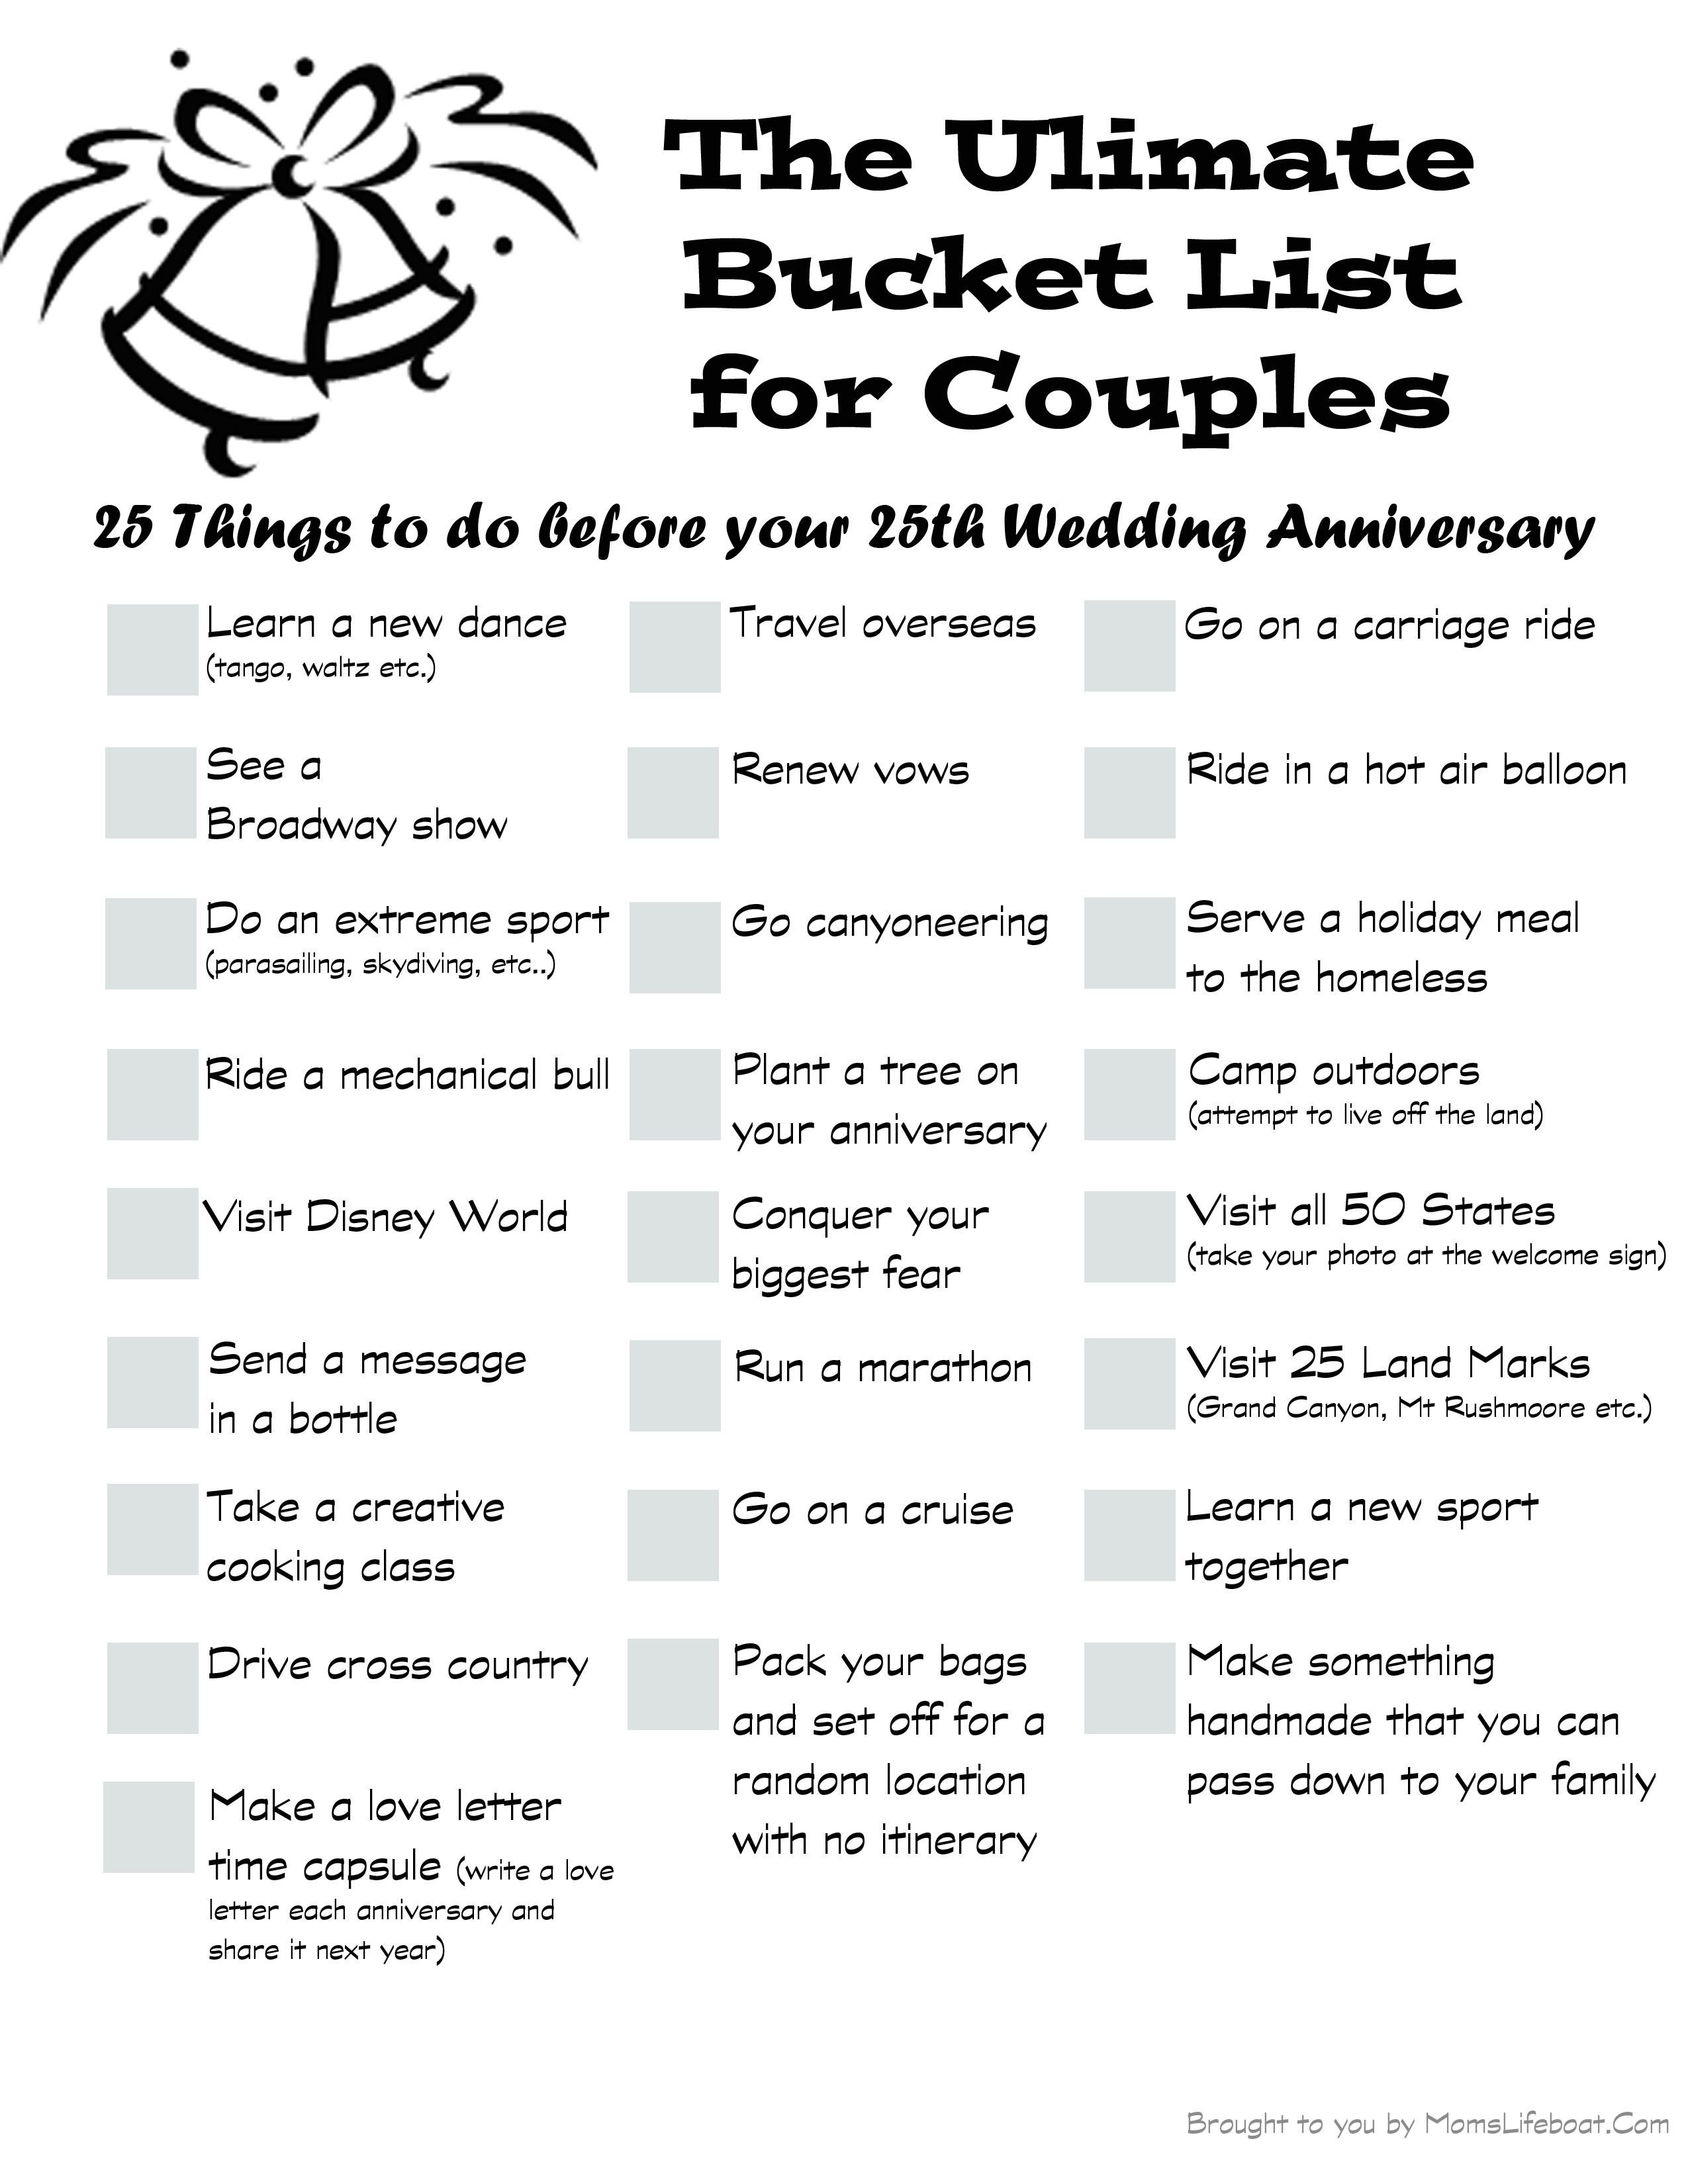 the ultimate bucket list for couples | buckets, couples and